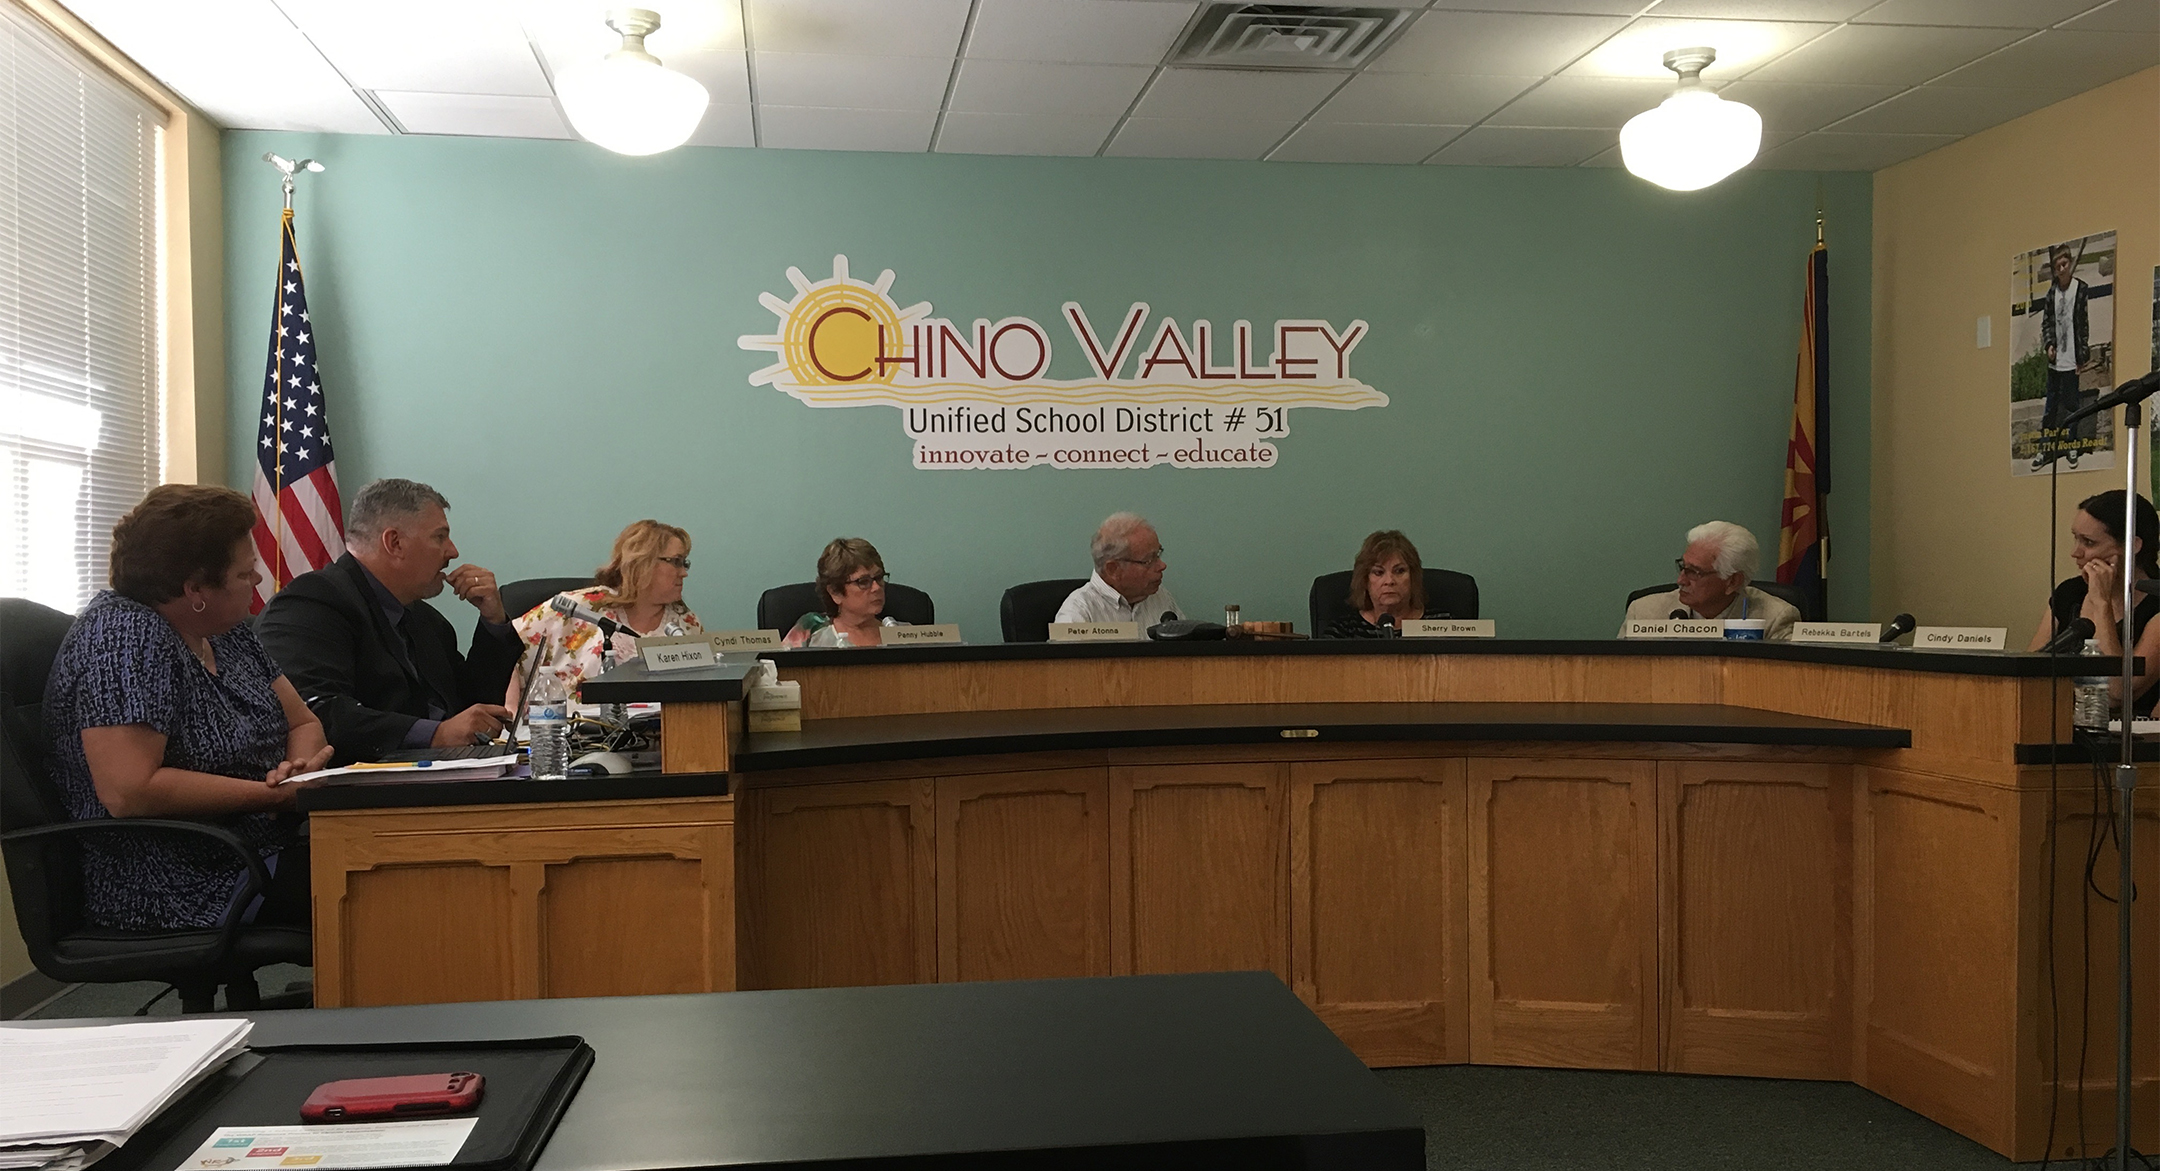 Before  And After School Program Fees Increase | Chino Valley Review | Chino  Valley, AZ